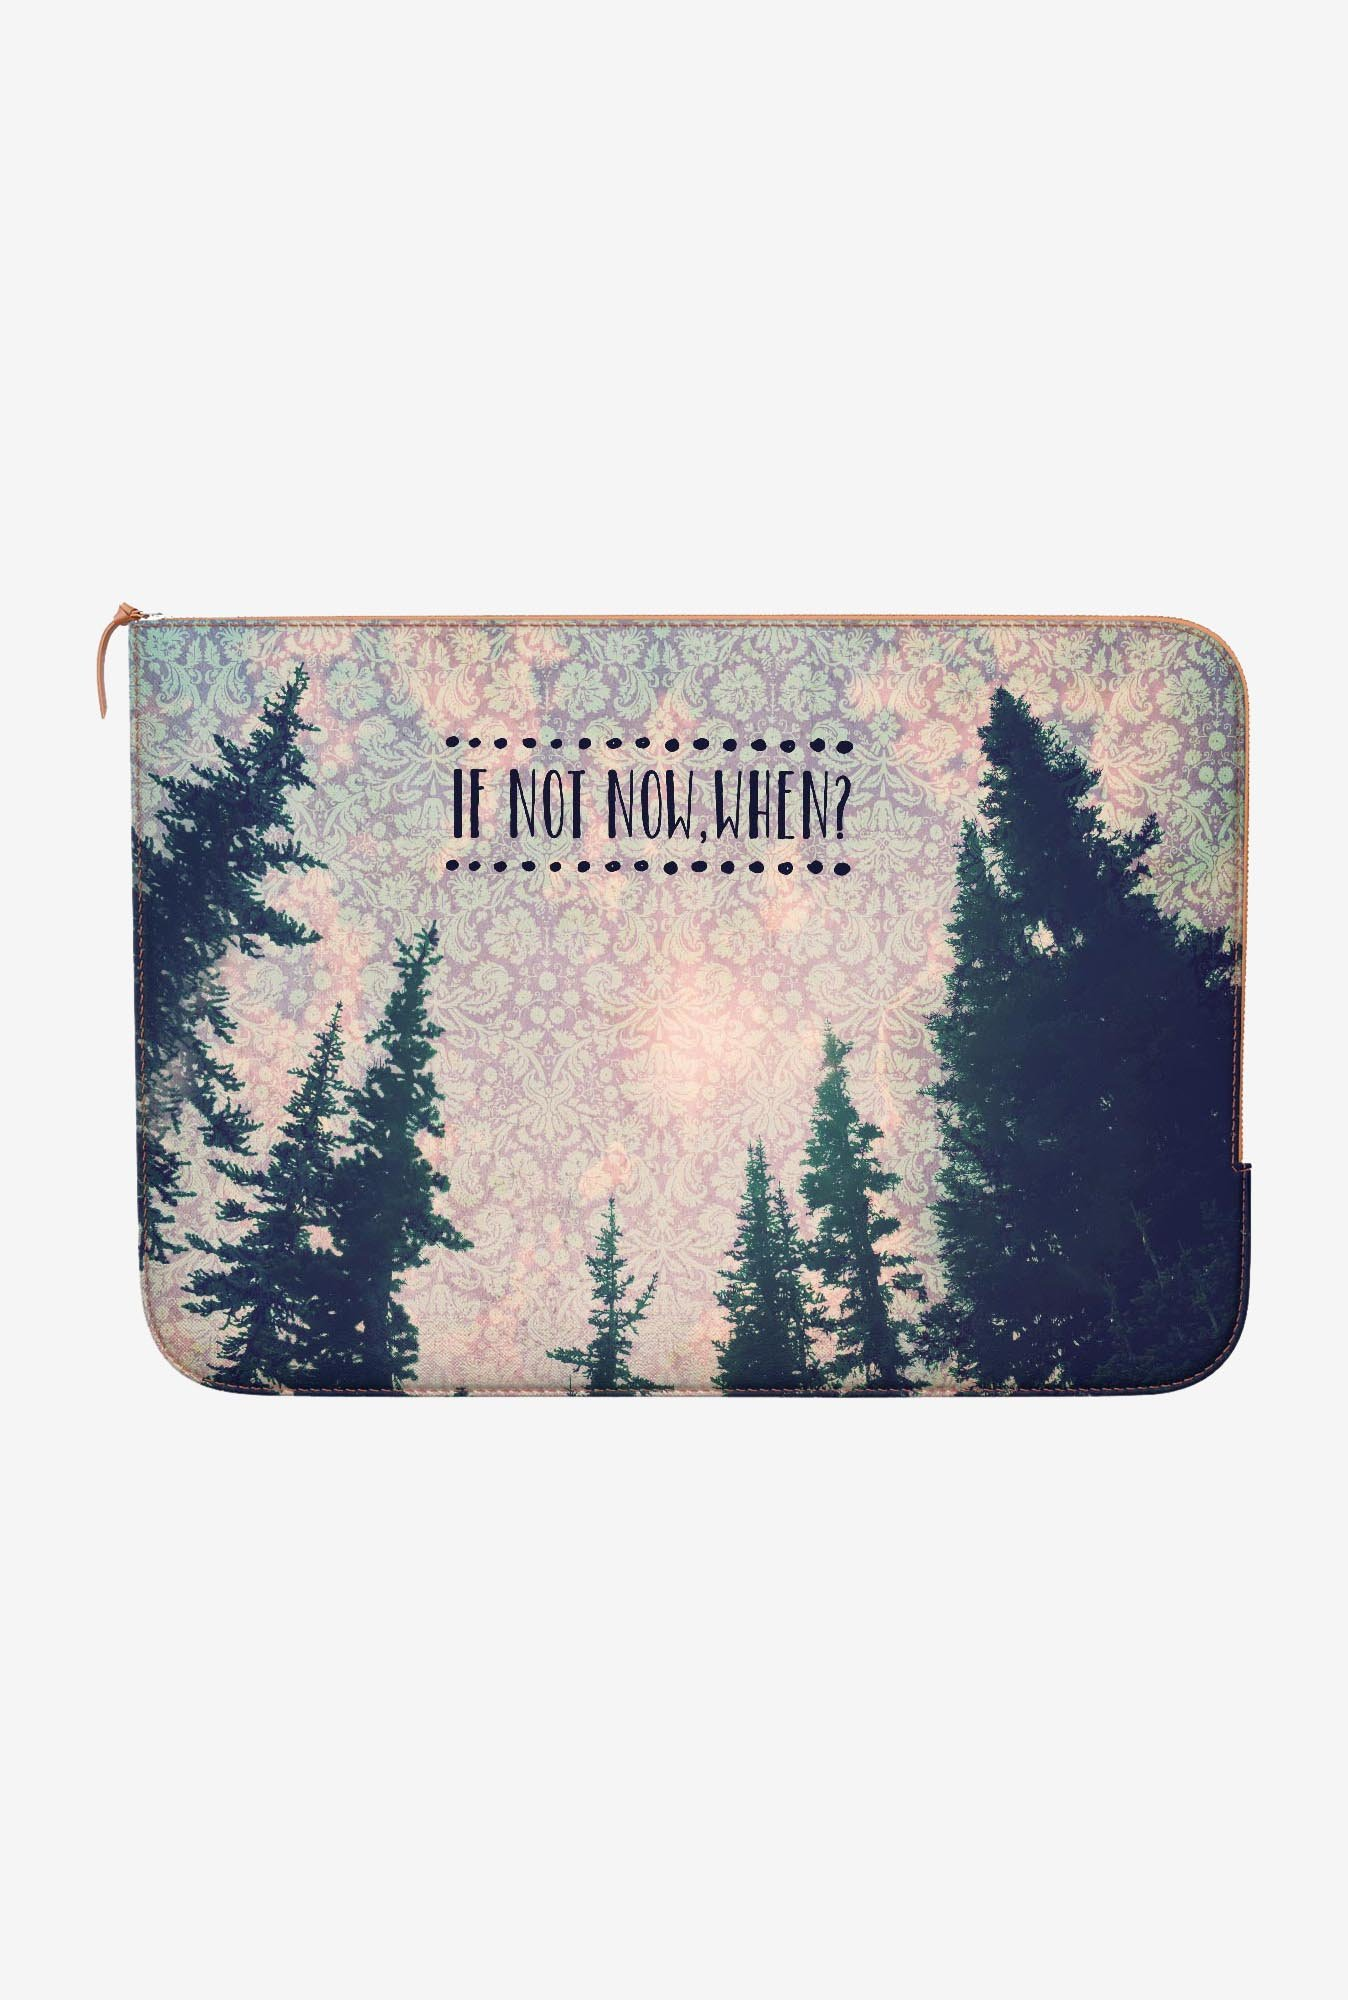 DailyObjects If Not Now MacBook Air 11 Zippered Sleeve